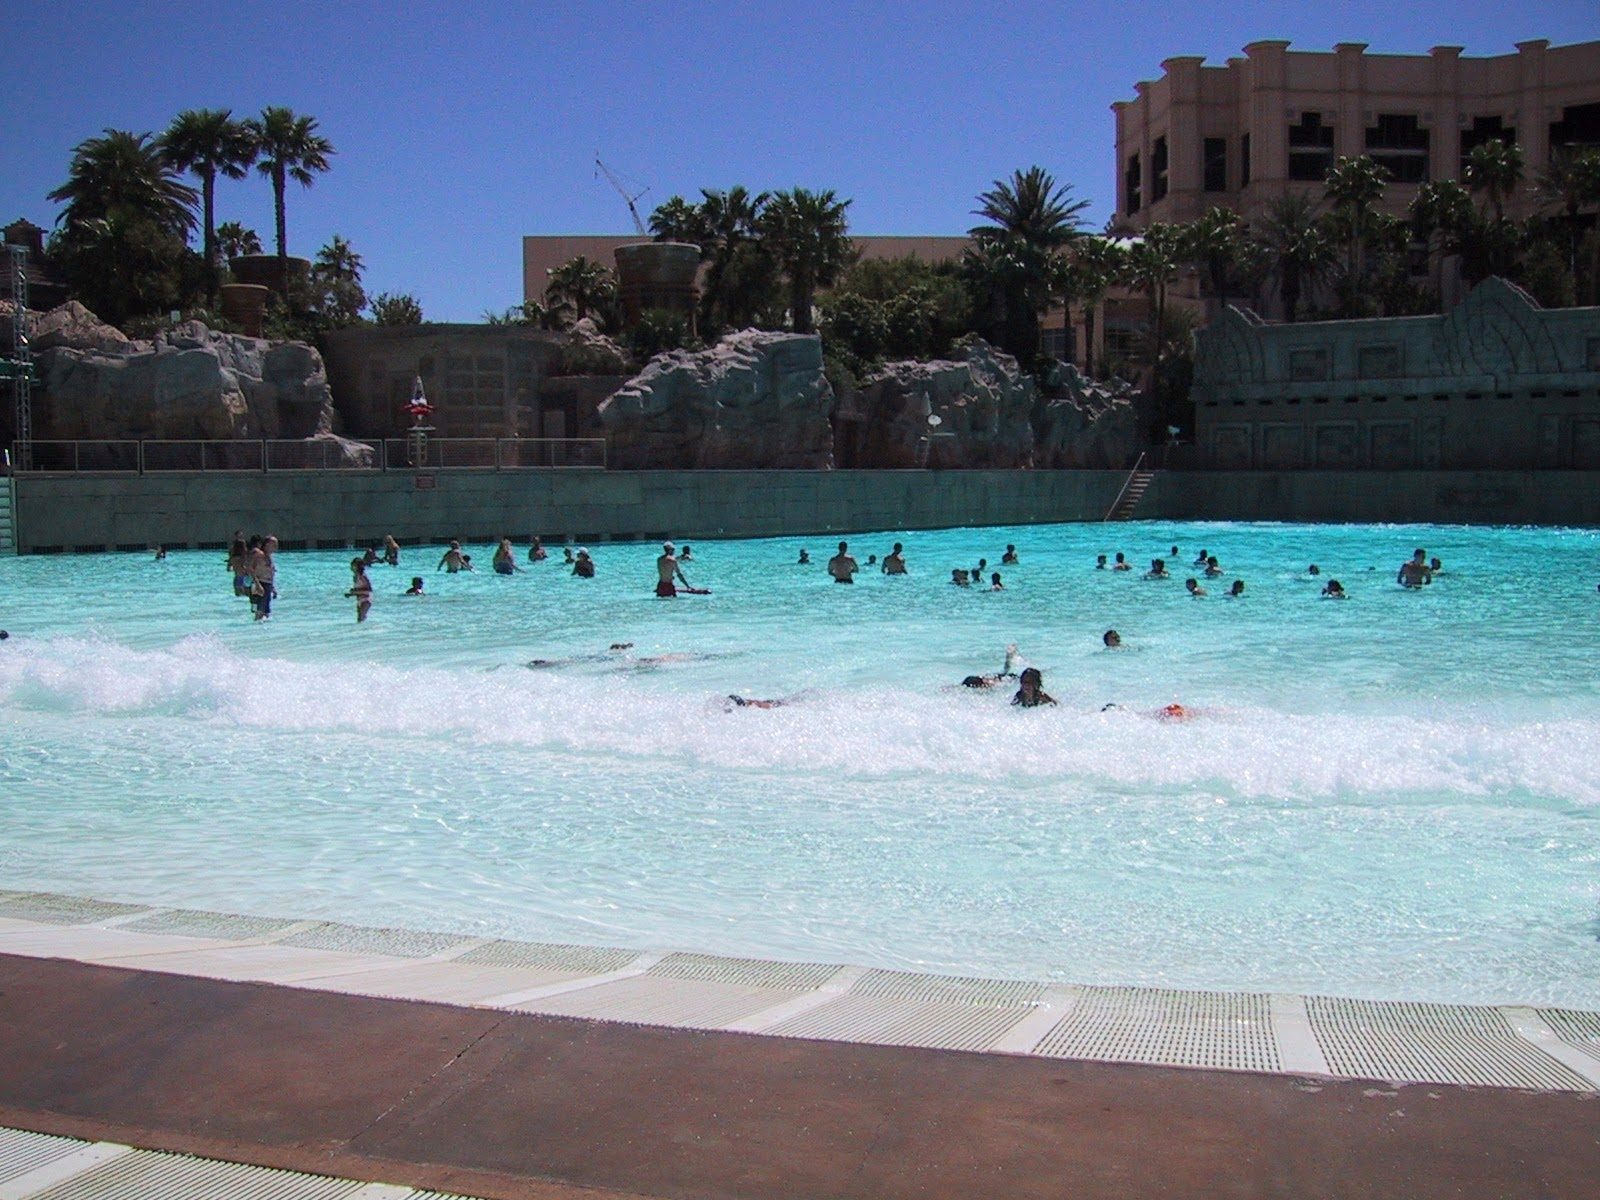 Mandalay Bay Beach, Mandalay Bay, Las Vegas